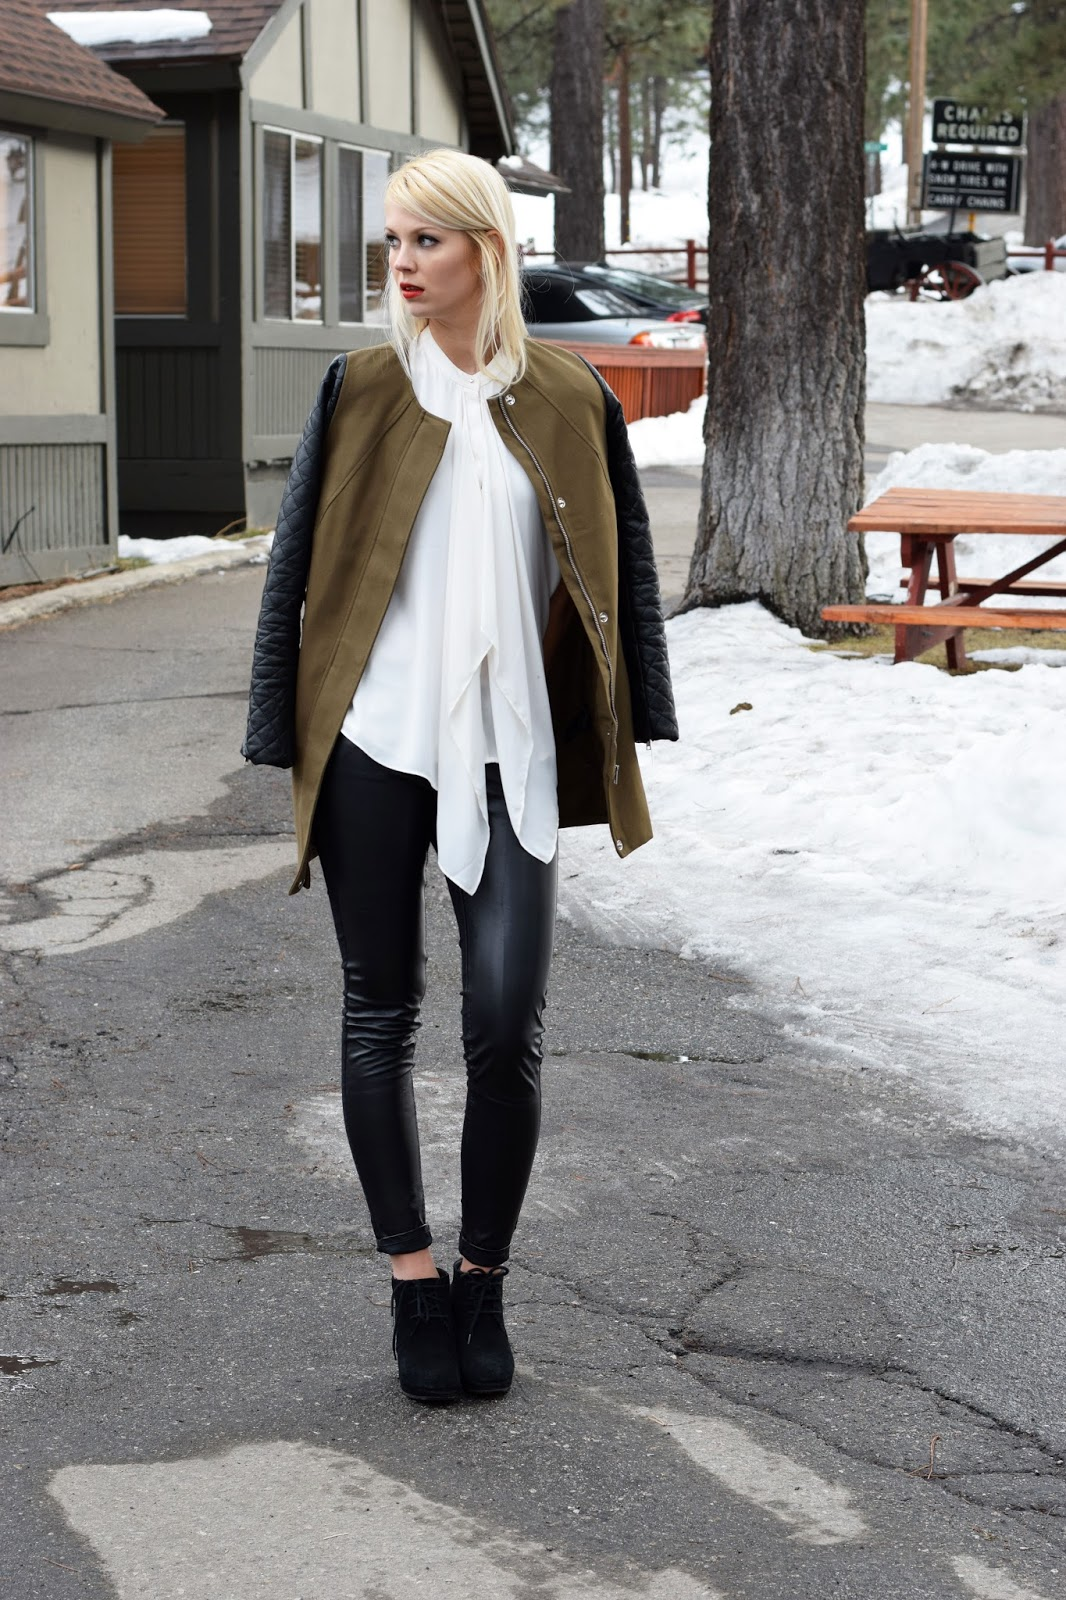 olive green coat, coat, office wear, leather pants, big bear, snow, blouse